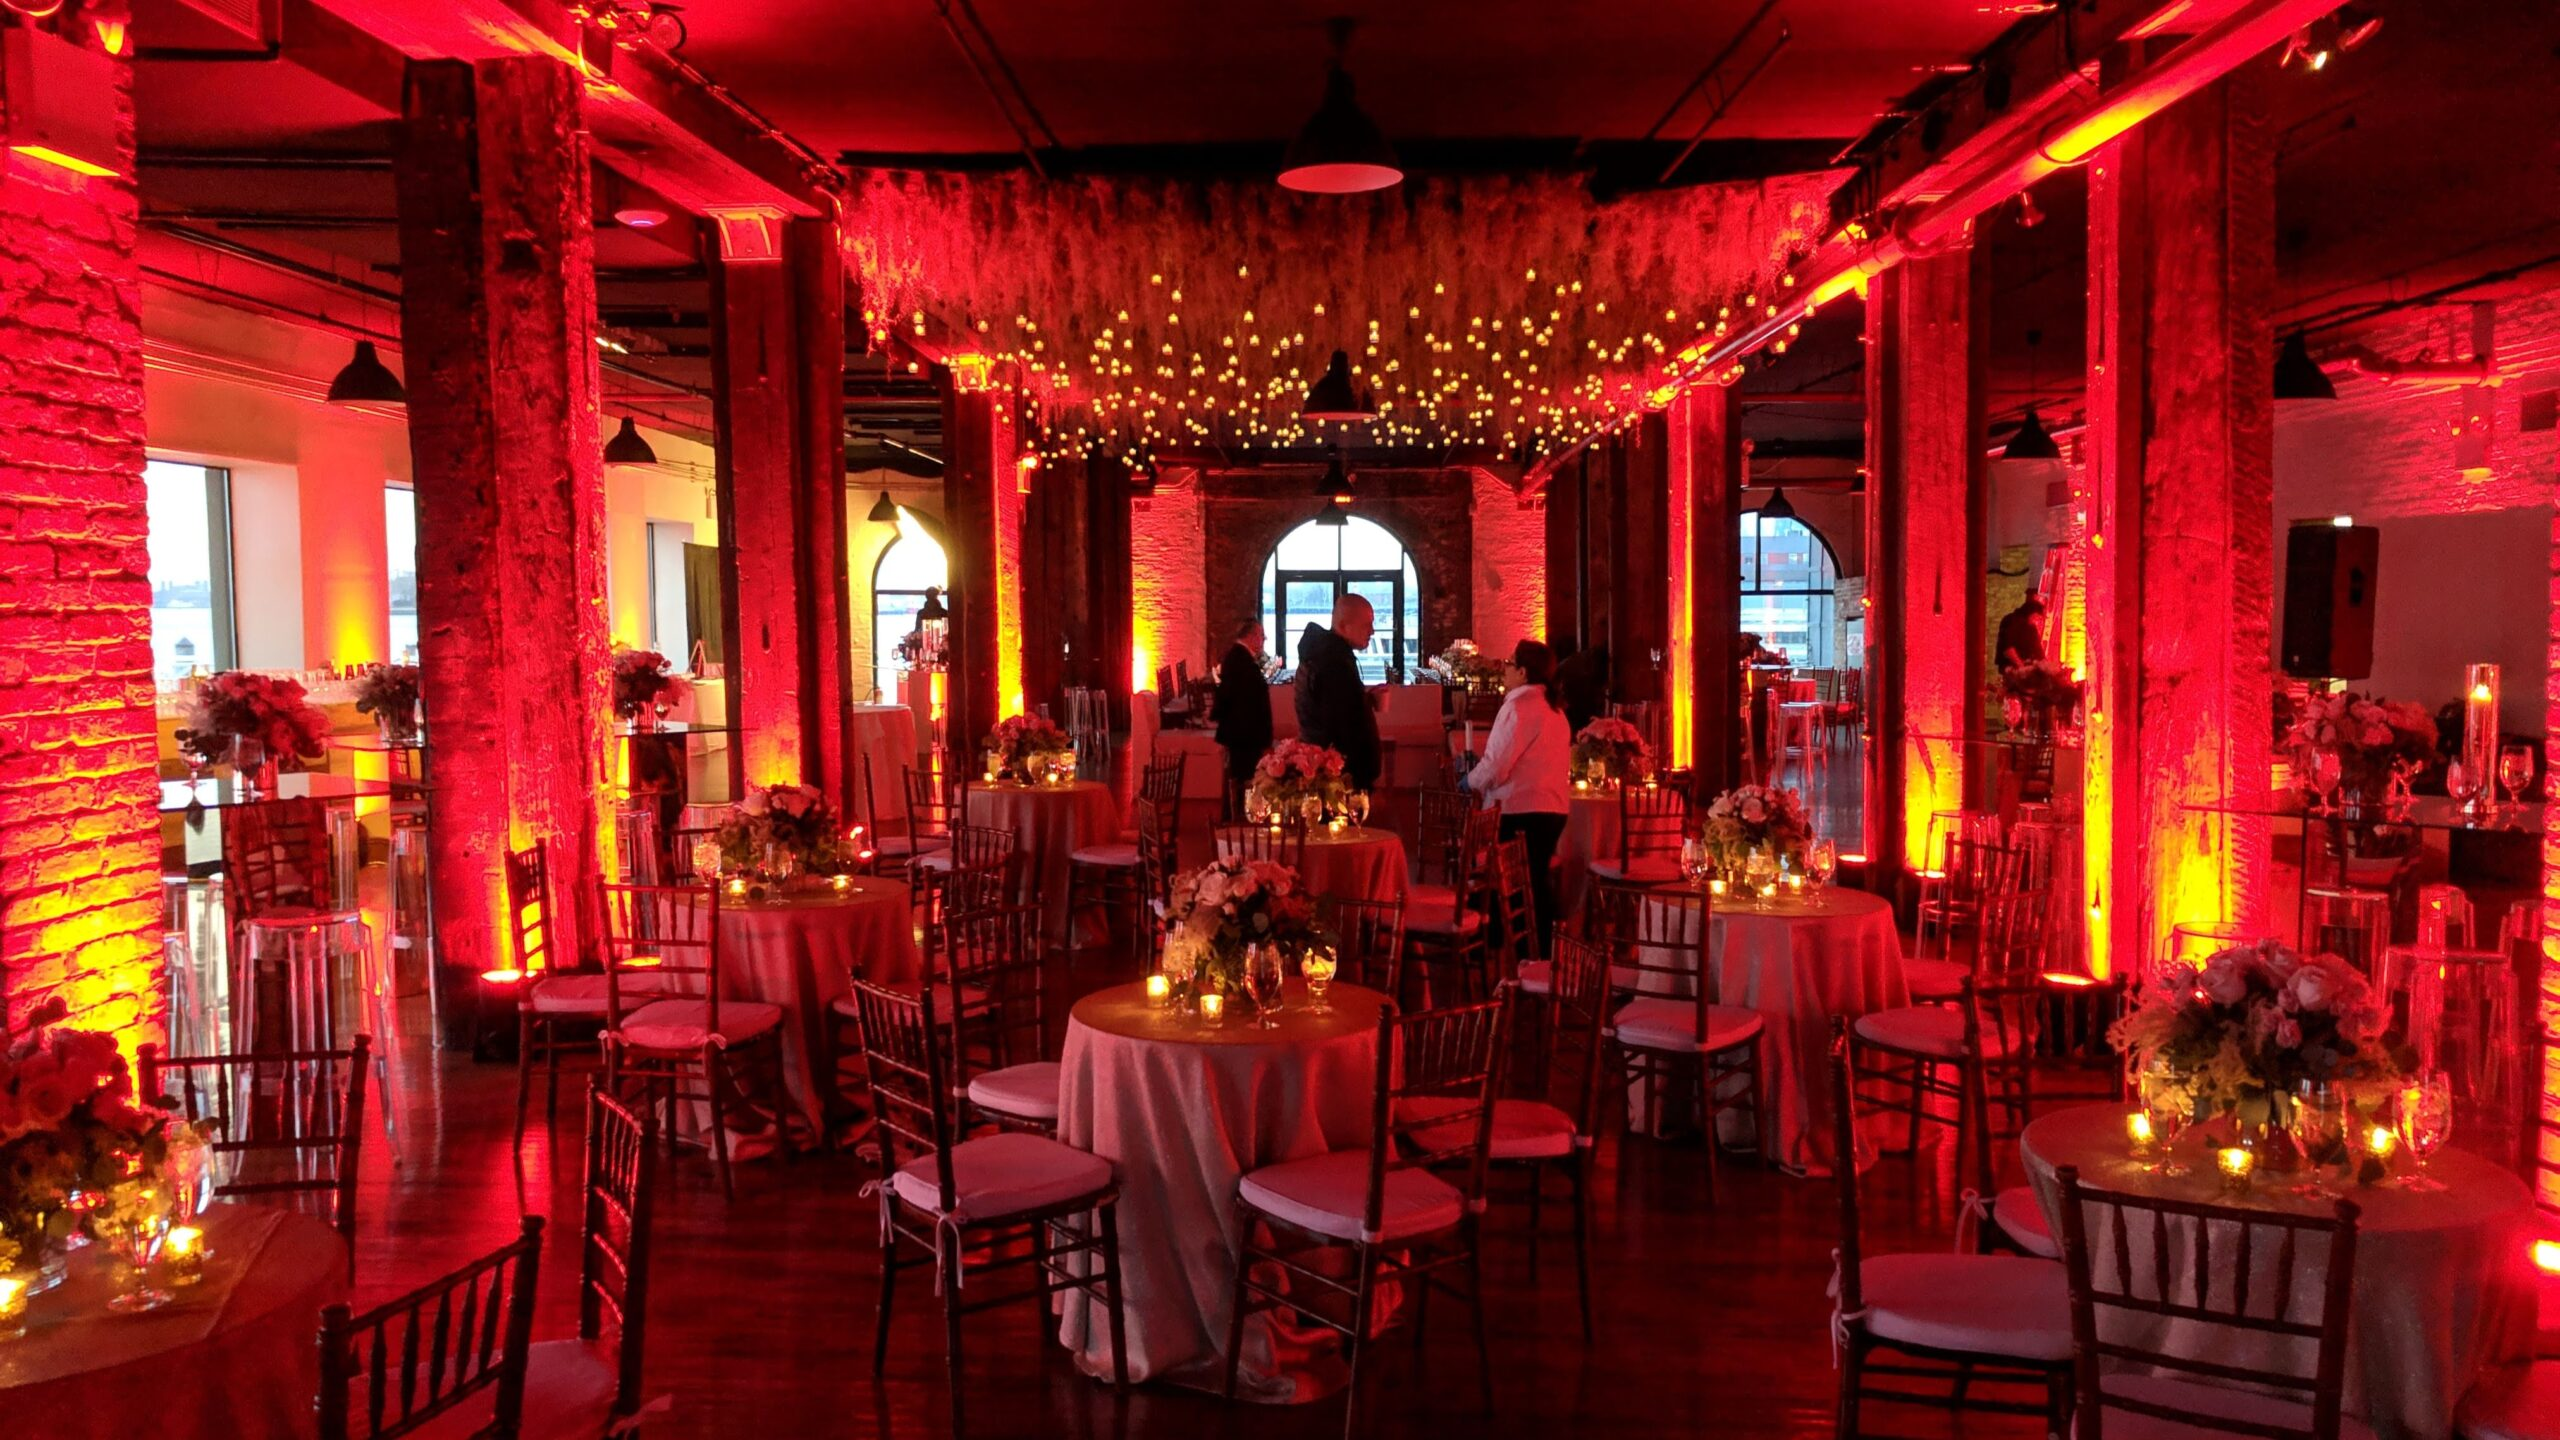 Dinner seating with Red Uplighting at Rustic wedding venue Libery Warehouse Brooklyn NY